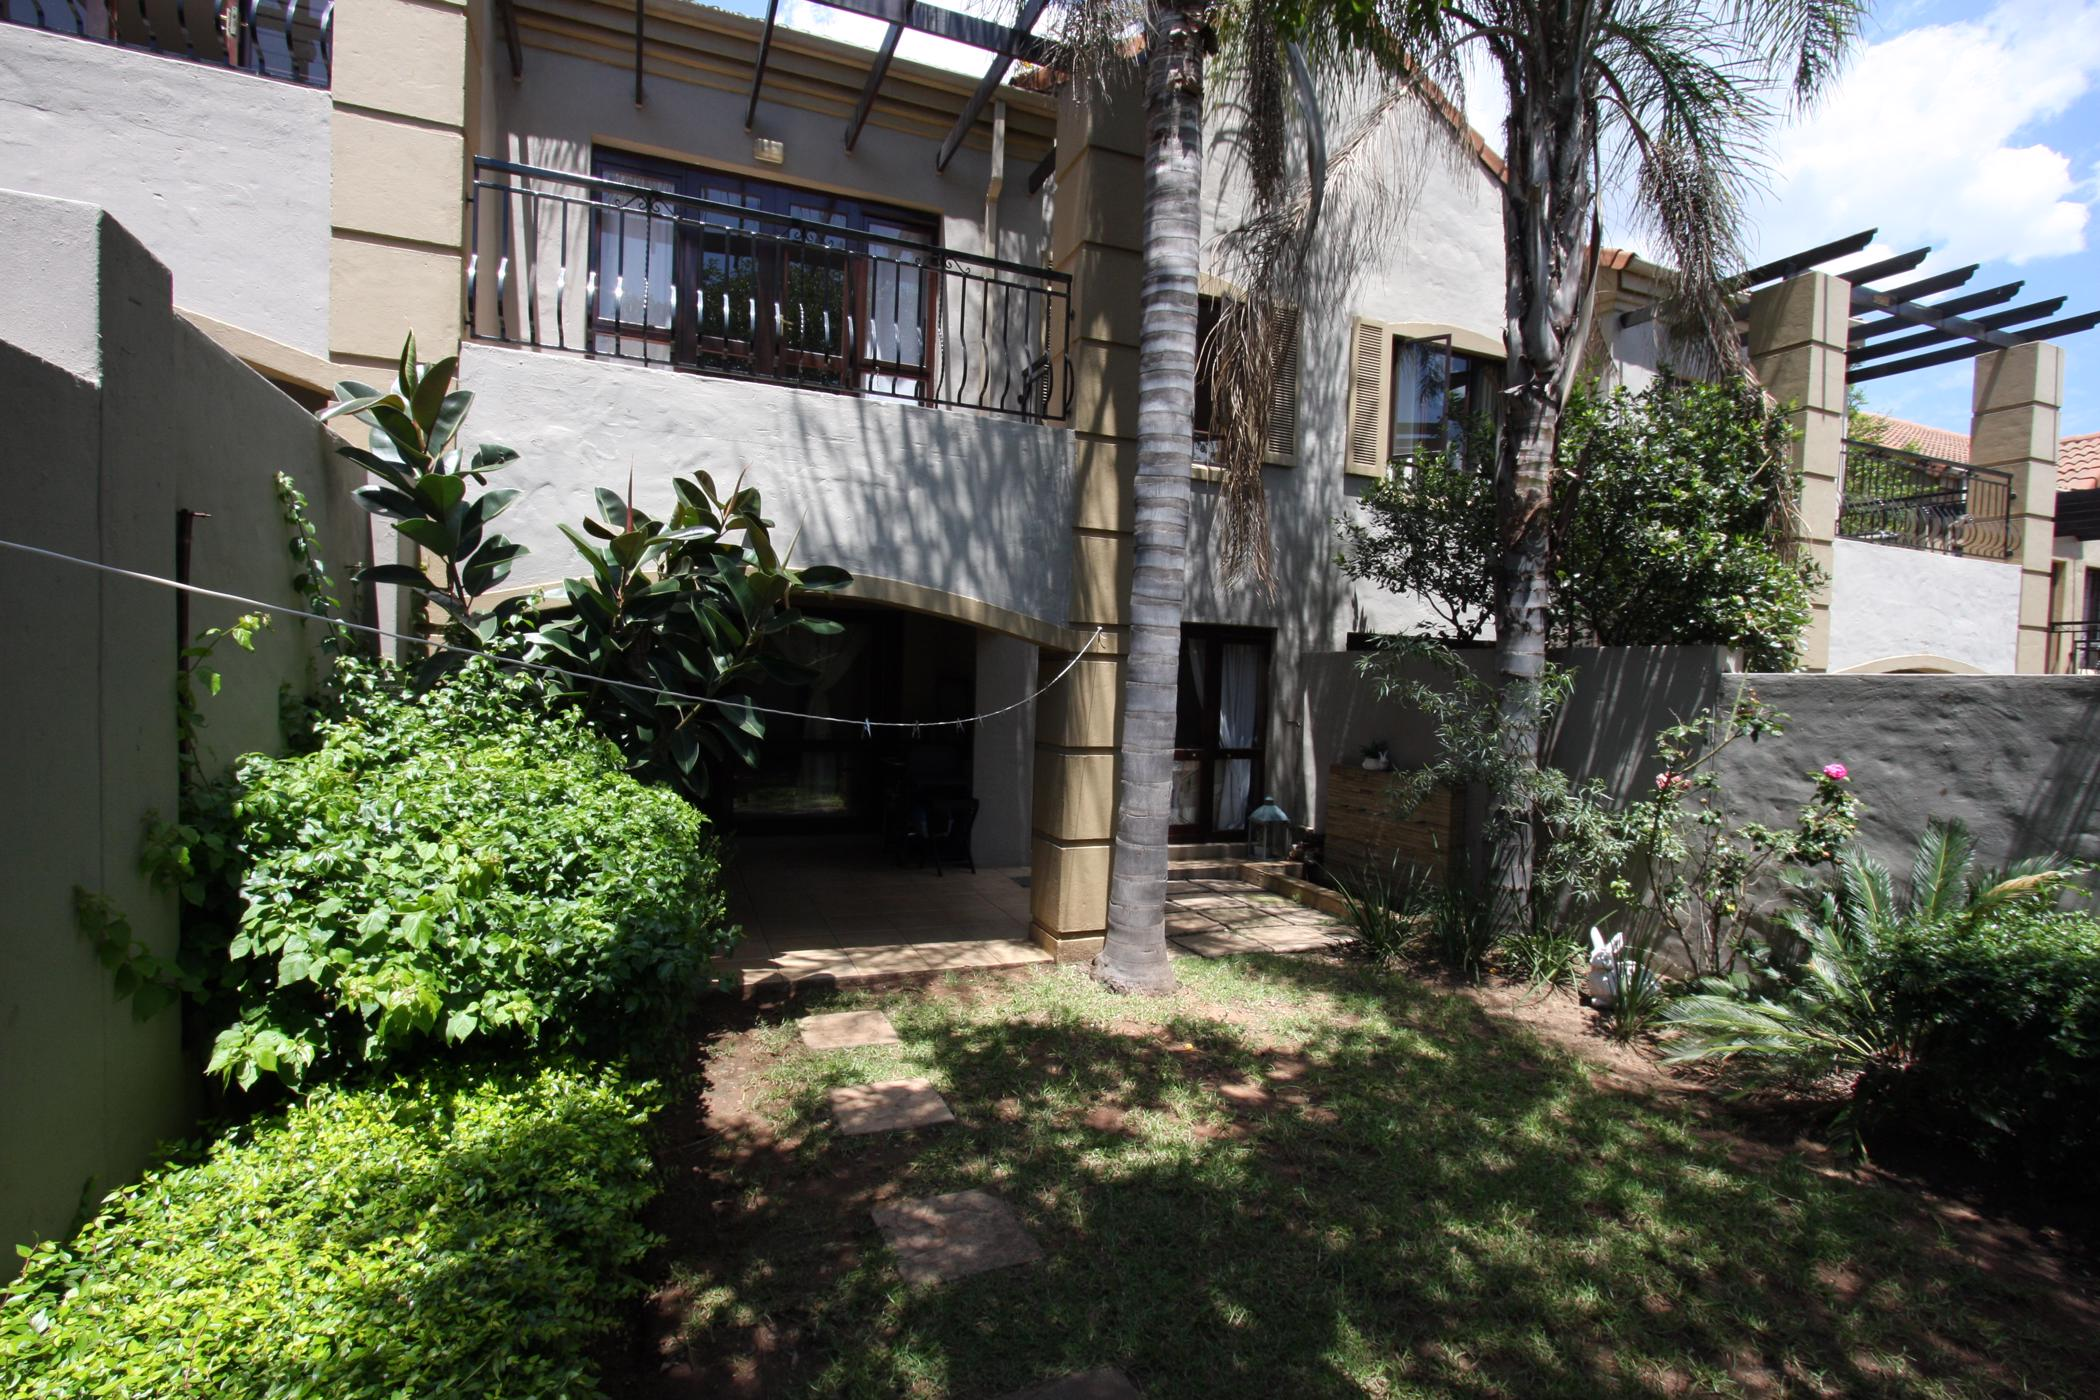 https://listing.pamgolding.co.za/images/properties/201902/1276146/H/1276146_H_5.jpg